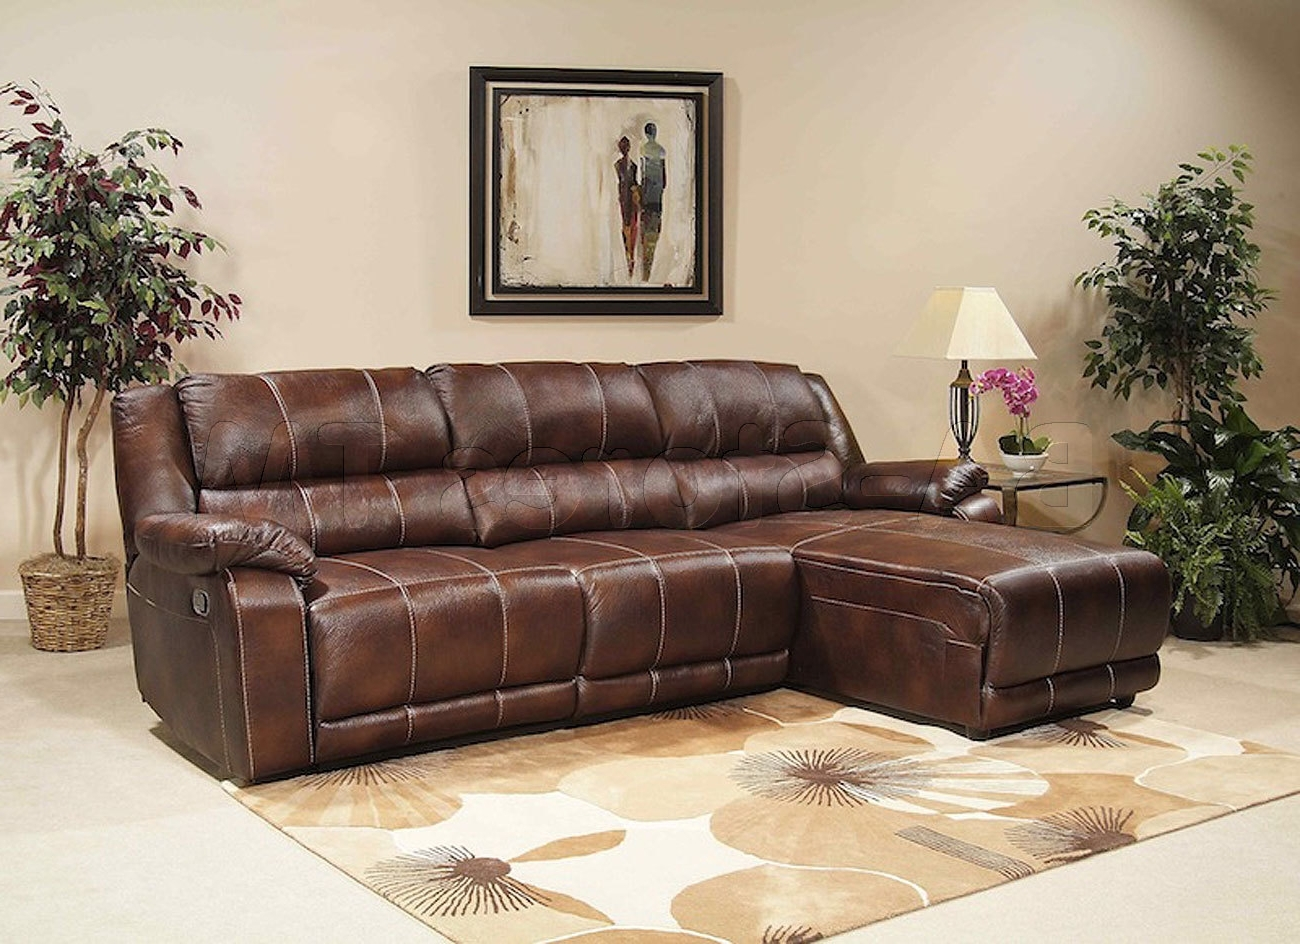 Most Popular Sofas With Chaise And Recliner Throughout An Overview Of Sectional Sofas With Recliner – Elites Home Decor (View 11 of 15)